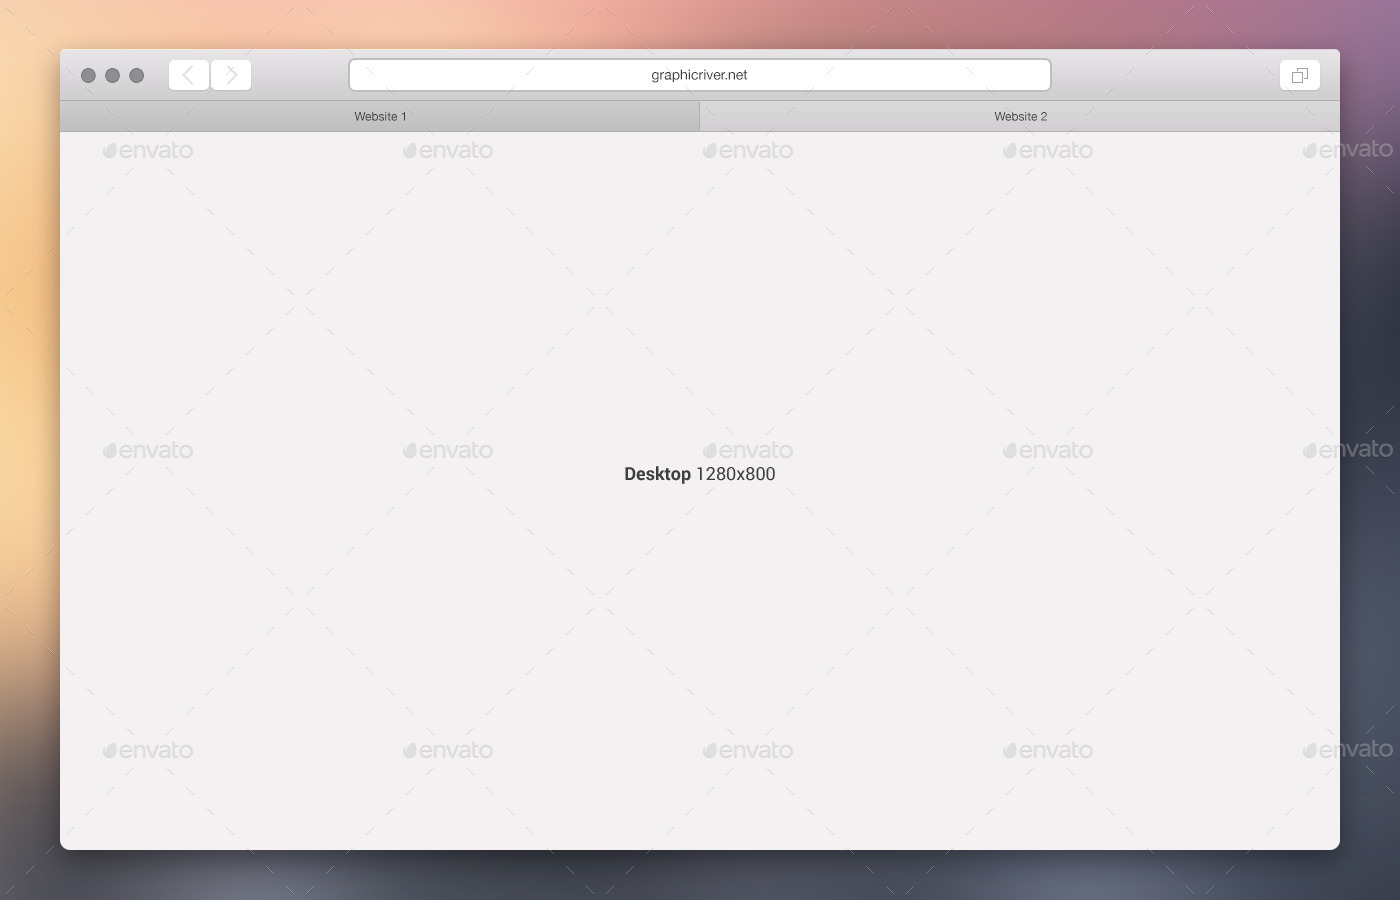 Web Browser Mockups by vaccuum - 81.1KB